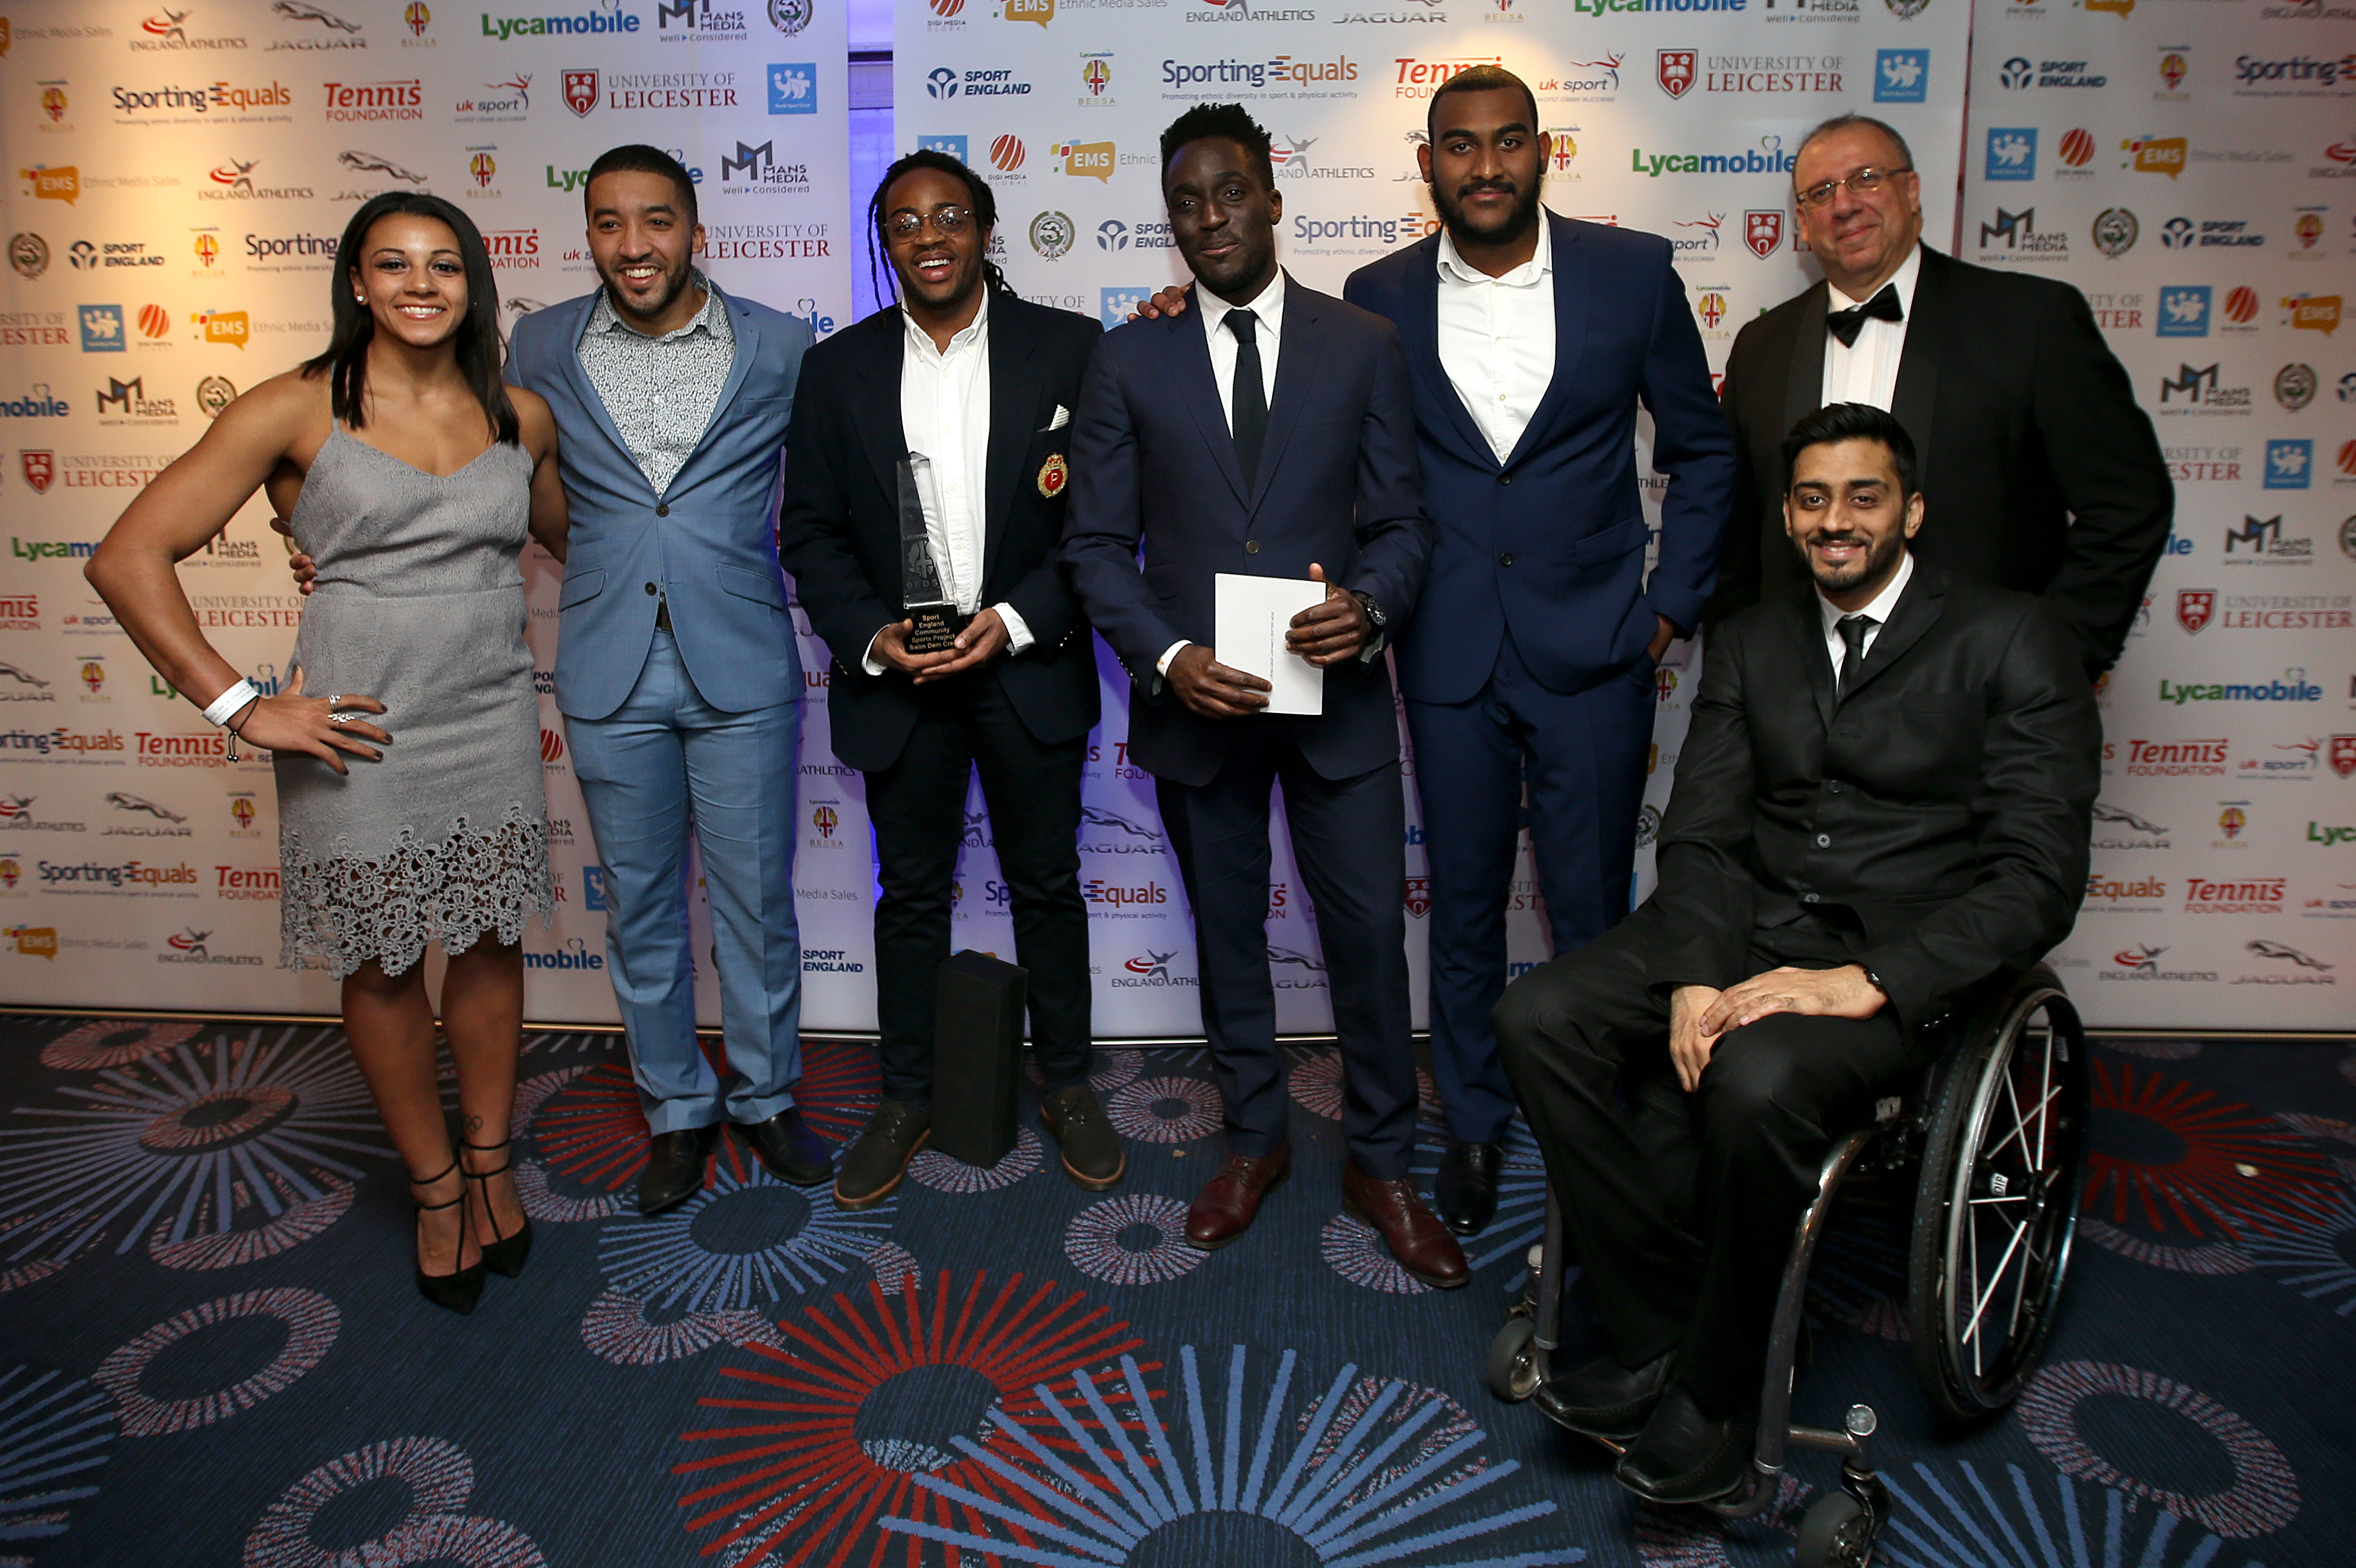 Swim Dem Crew win big at BEDSA awards